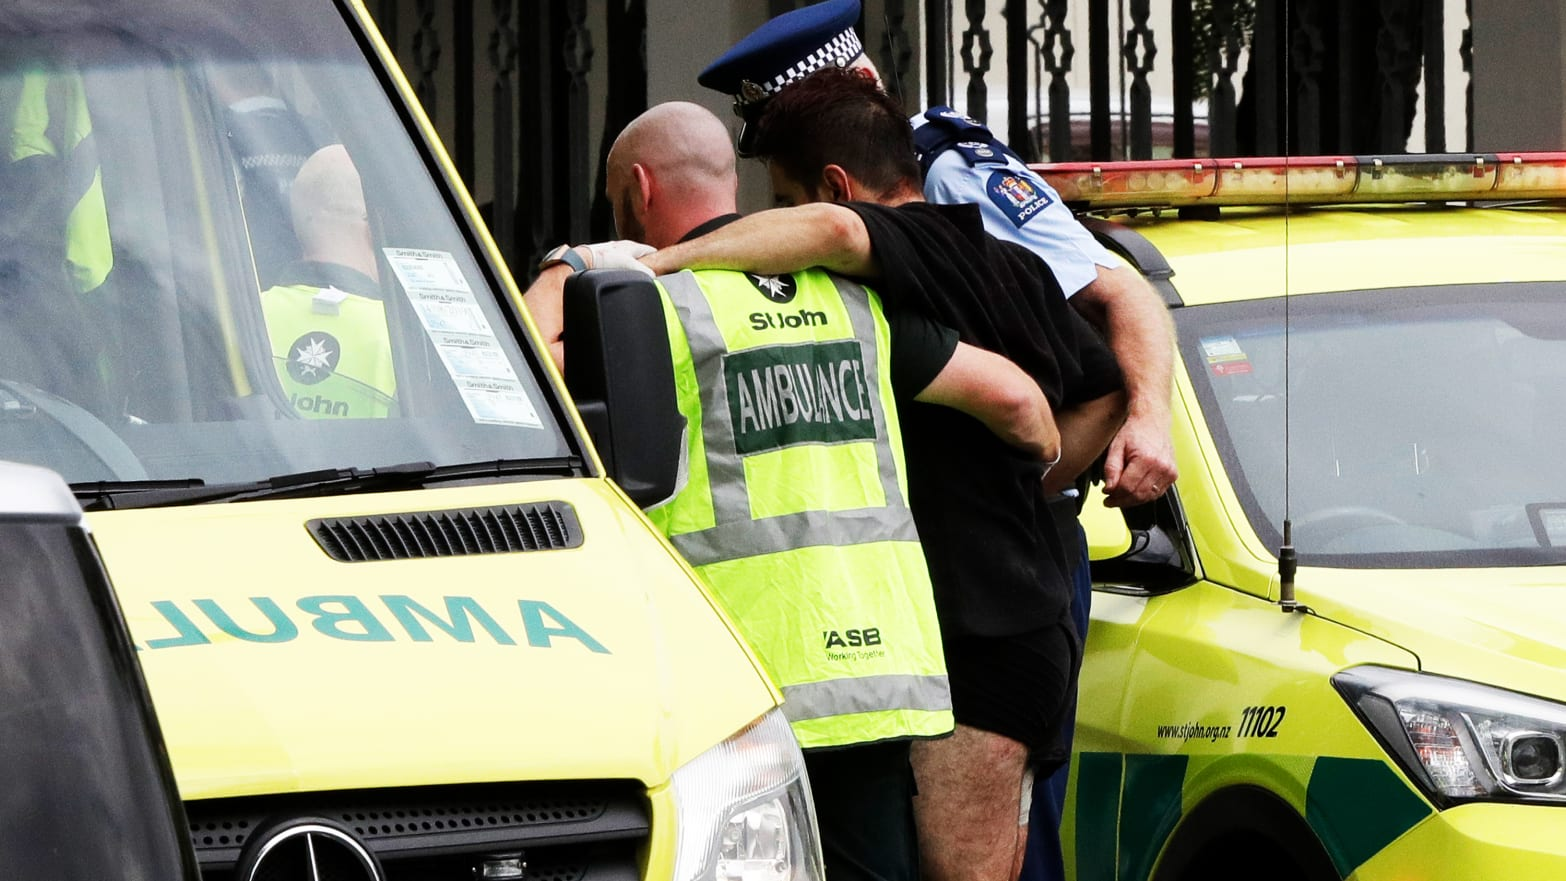 New Zealand Shooting at Christchurch Mosques: 49 Dead on Nation's